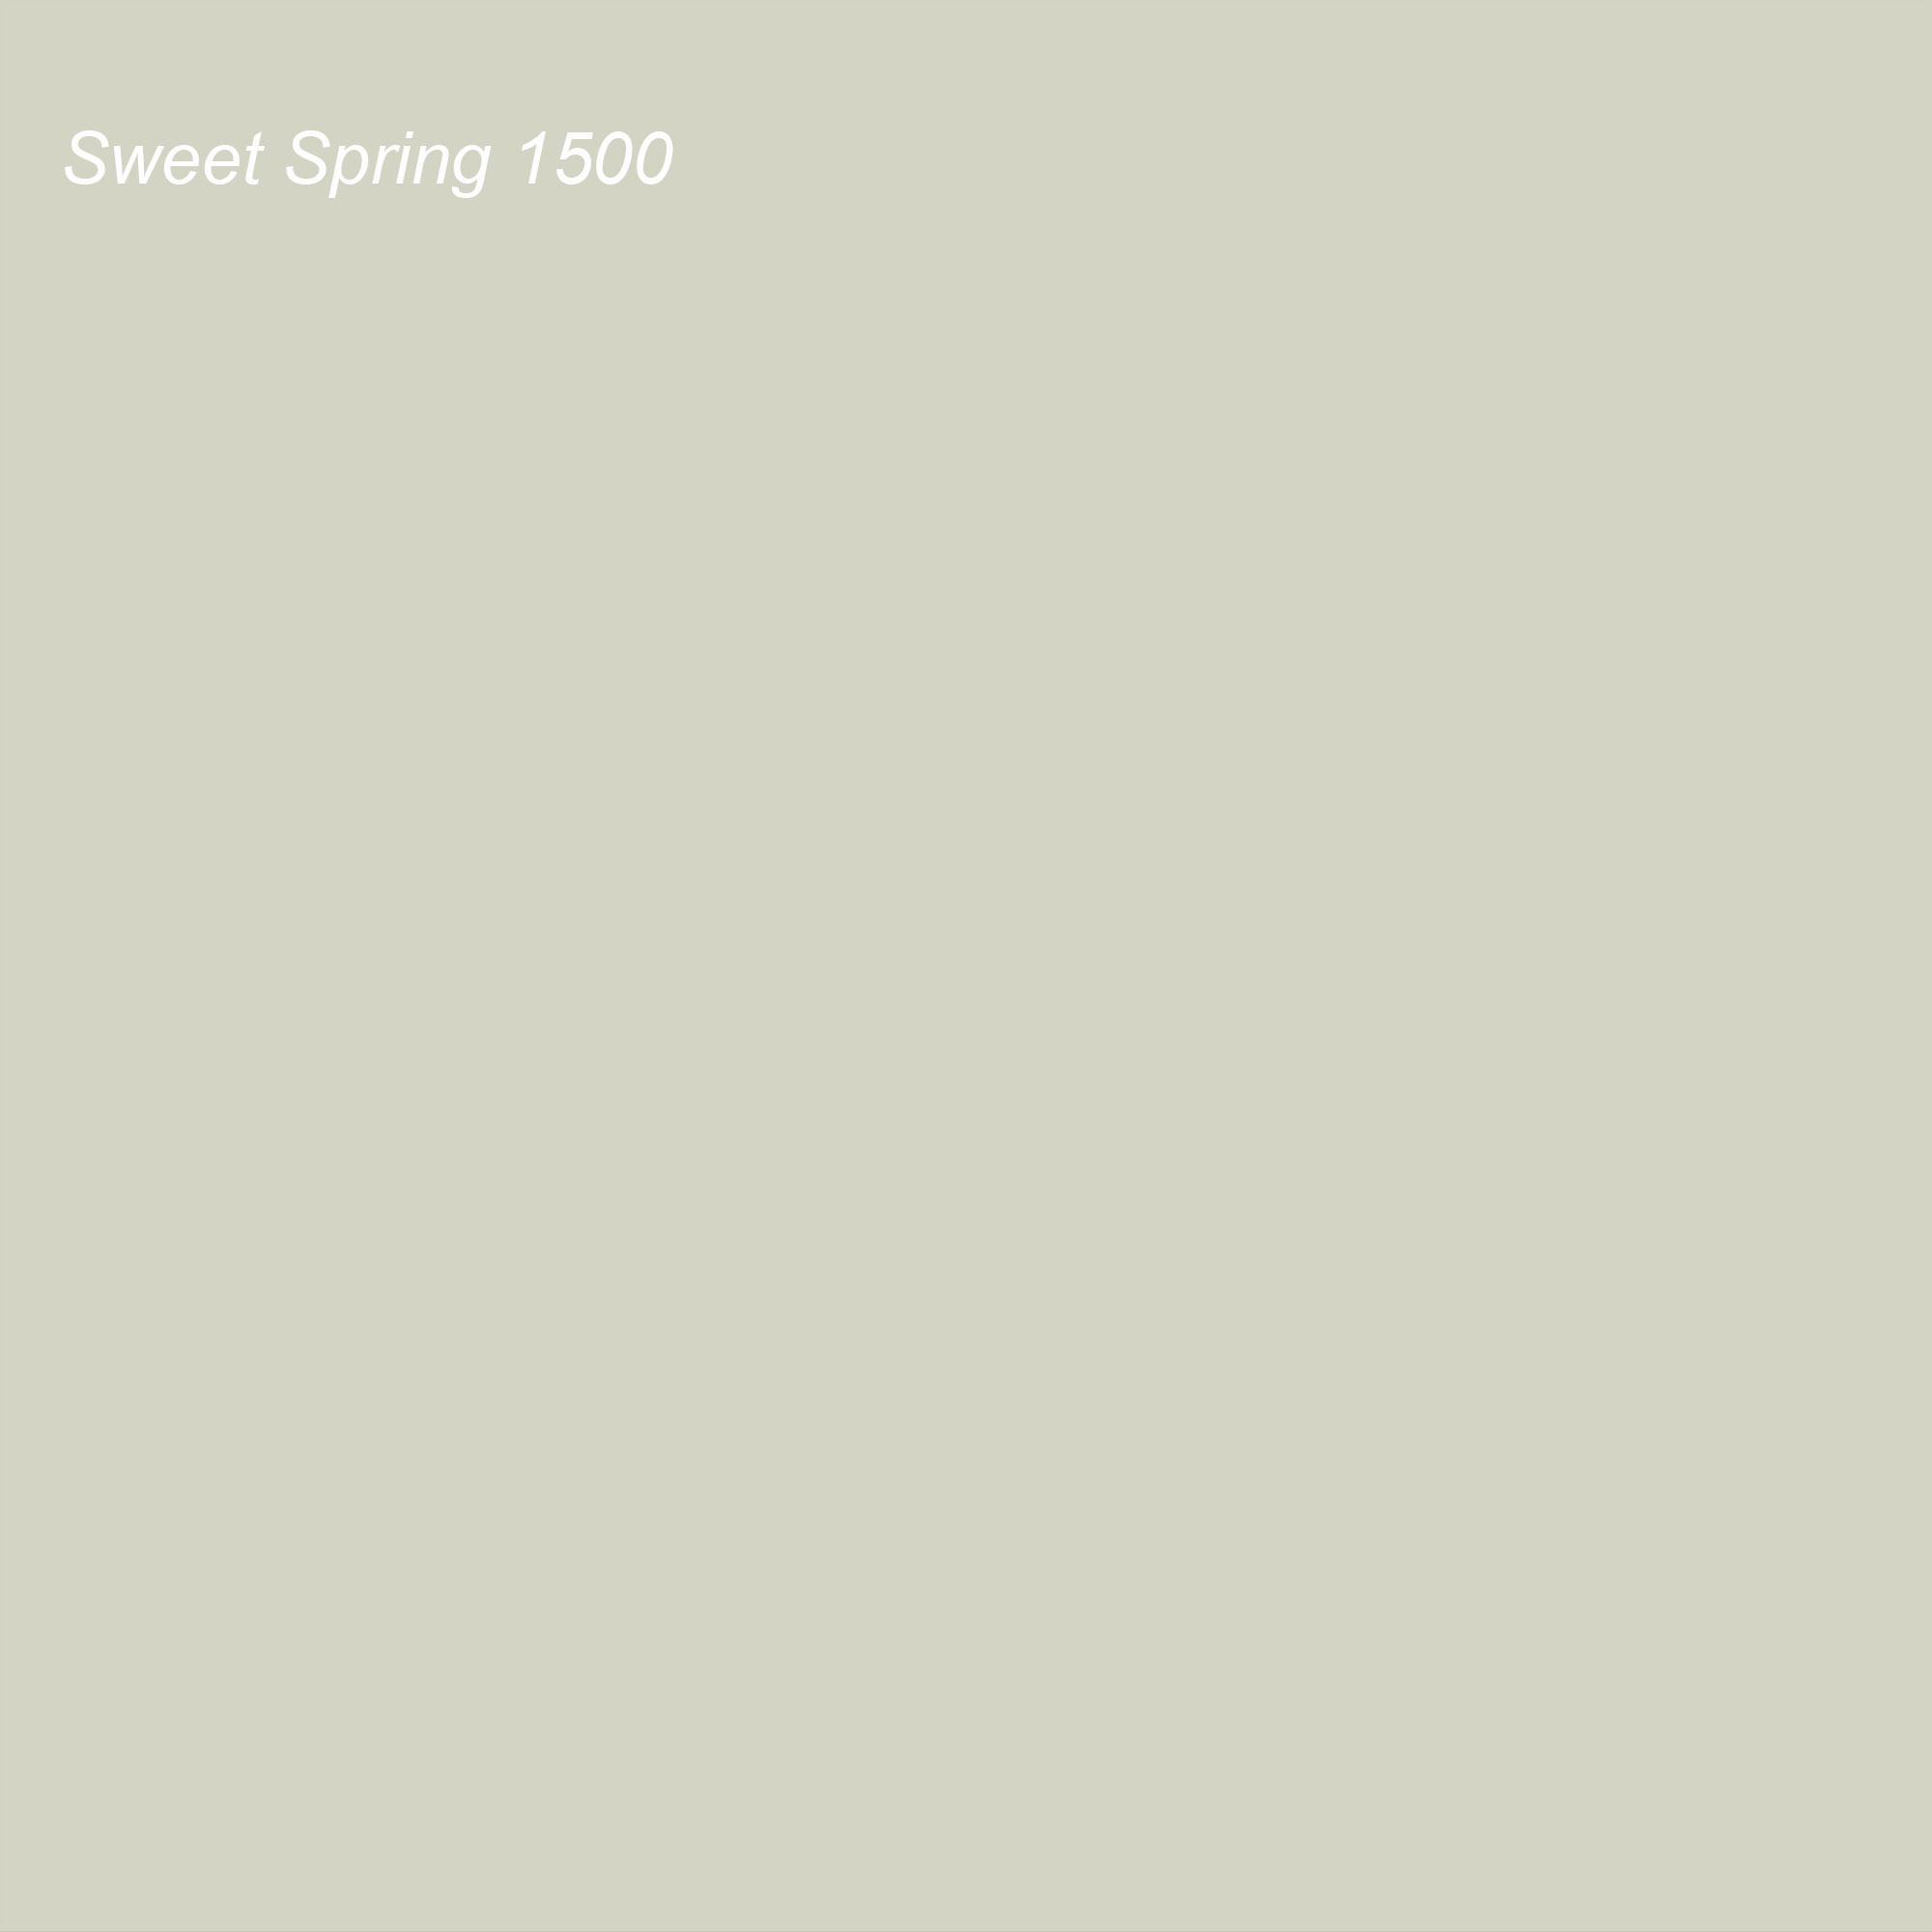 Benjamin Moore 2021 Color of the Year Suggested Accent Shade Sweet Spring 1500